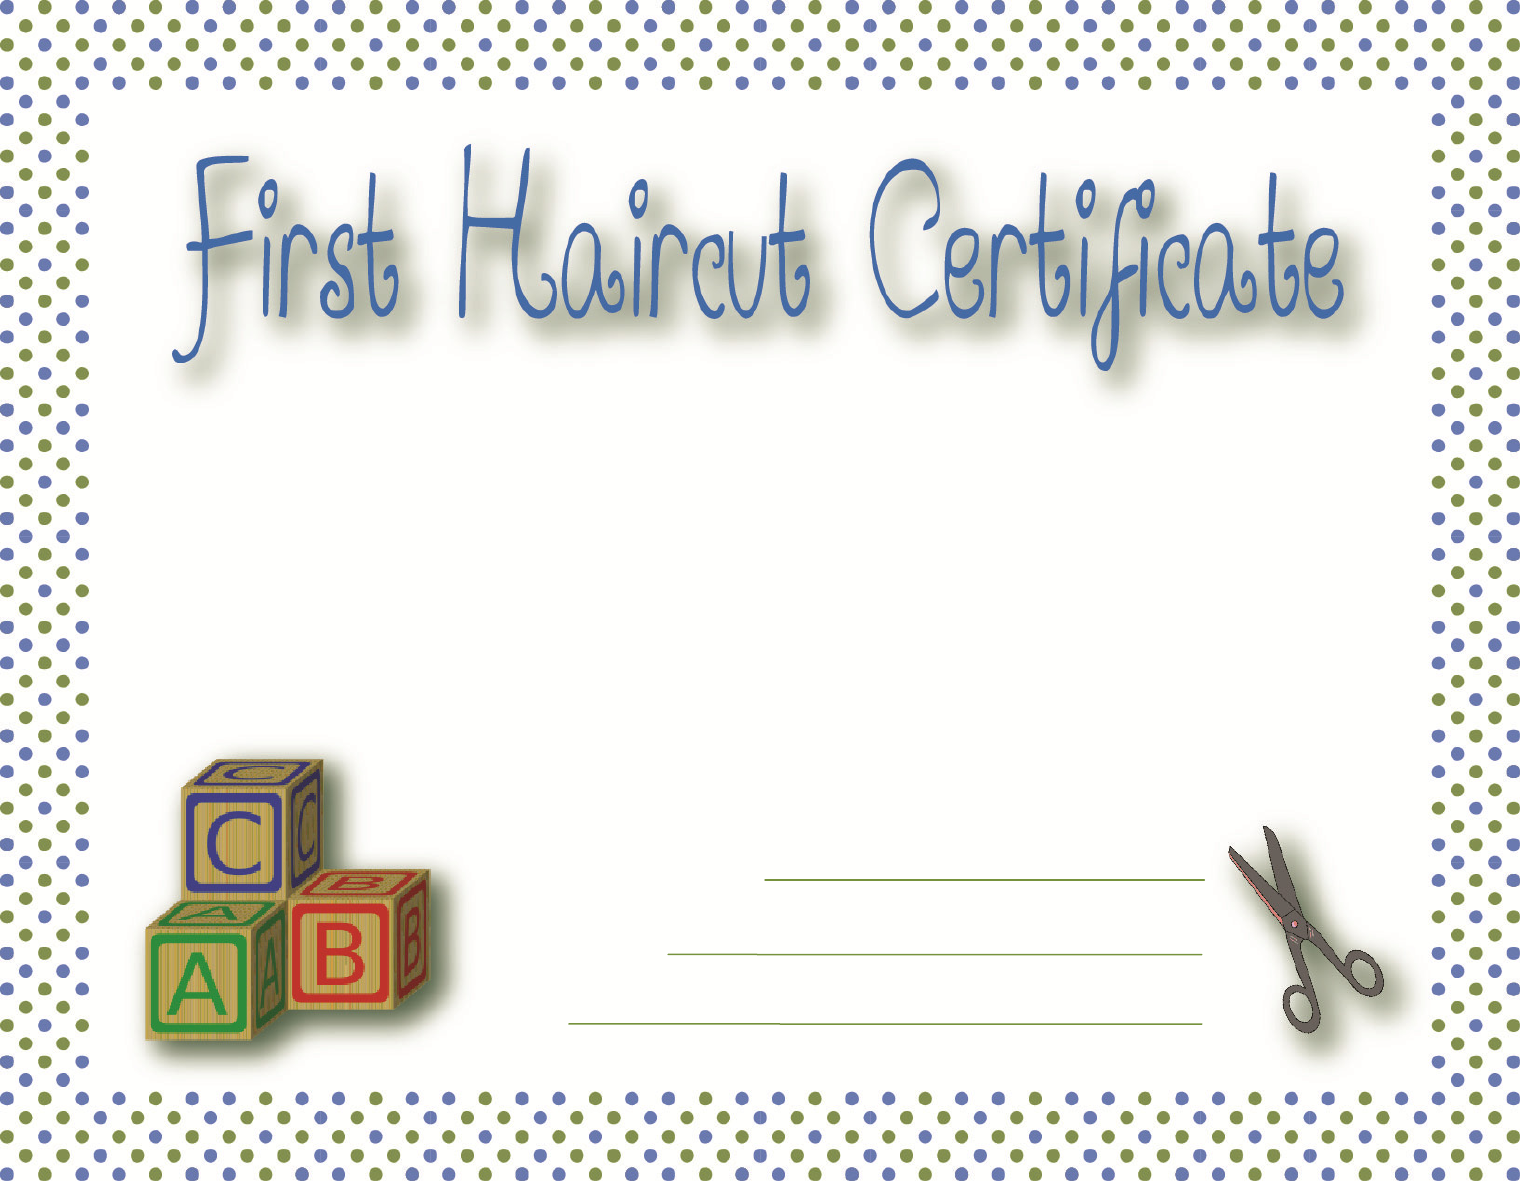 Free First Haircut Certificate Pdf 2804kb 1 Pages